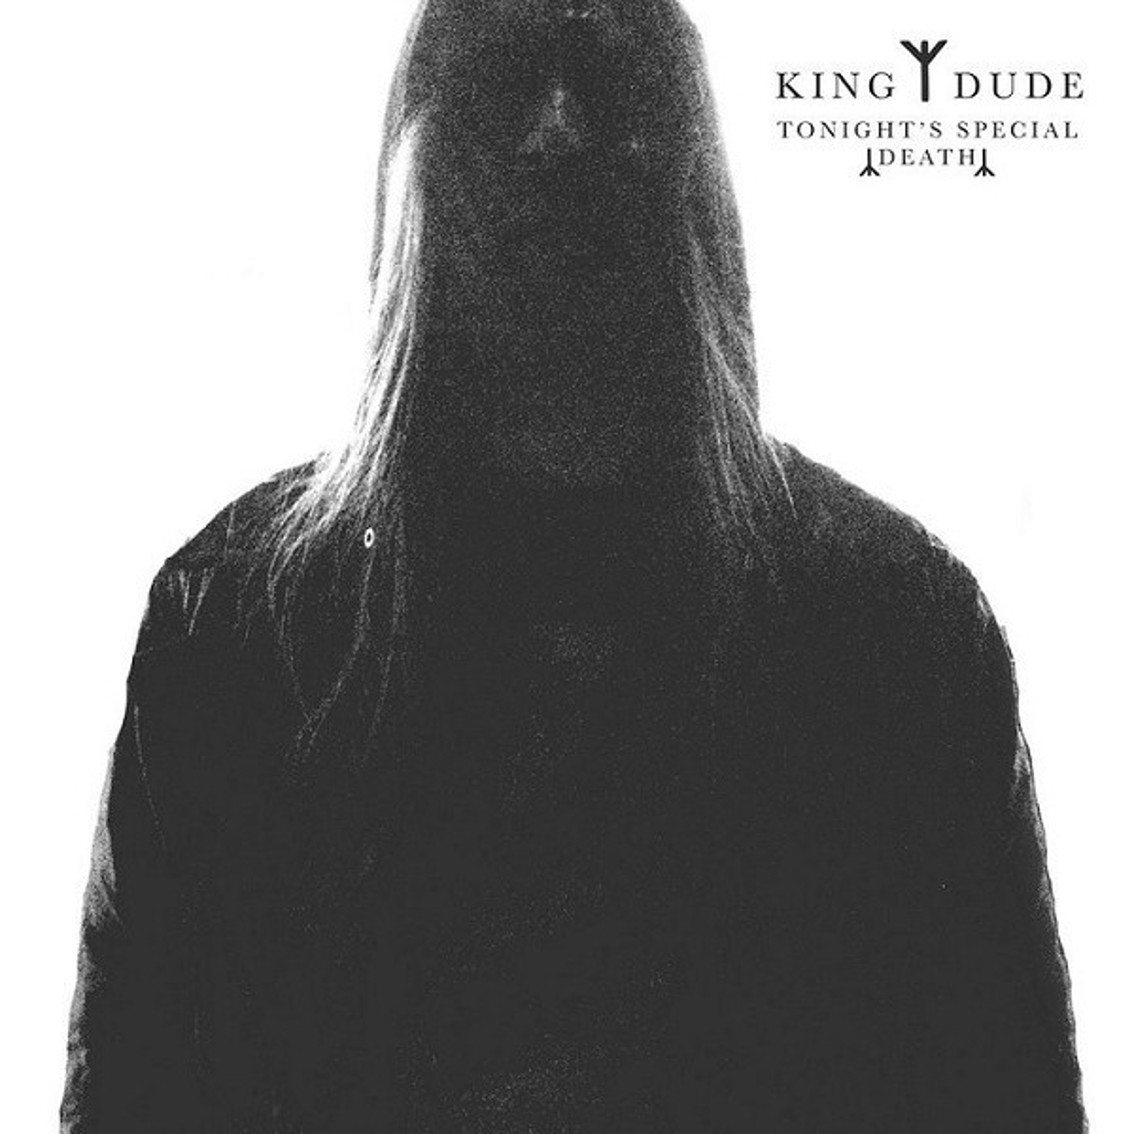 King Dude CDr-only release 'Tonight's special death' gets official re-release with bonus tracks